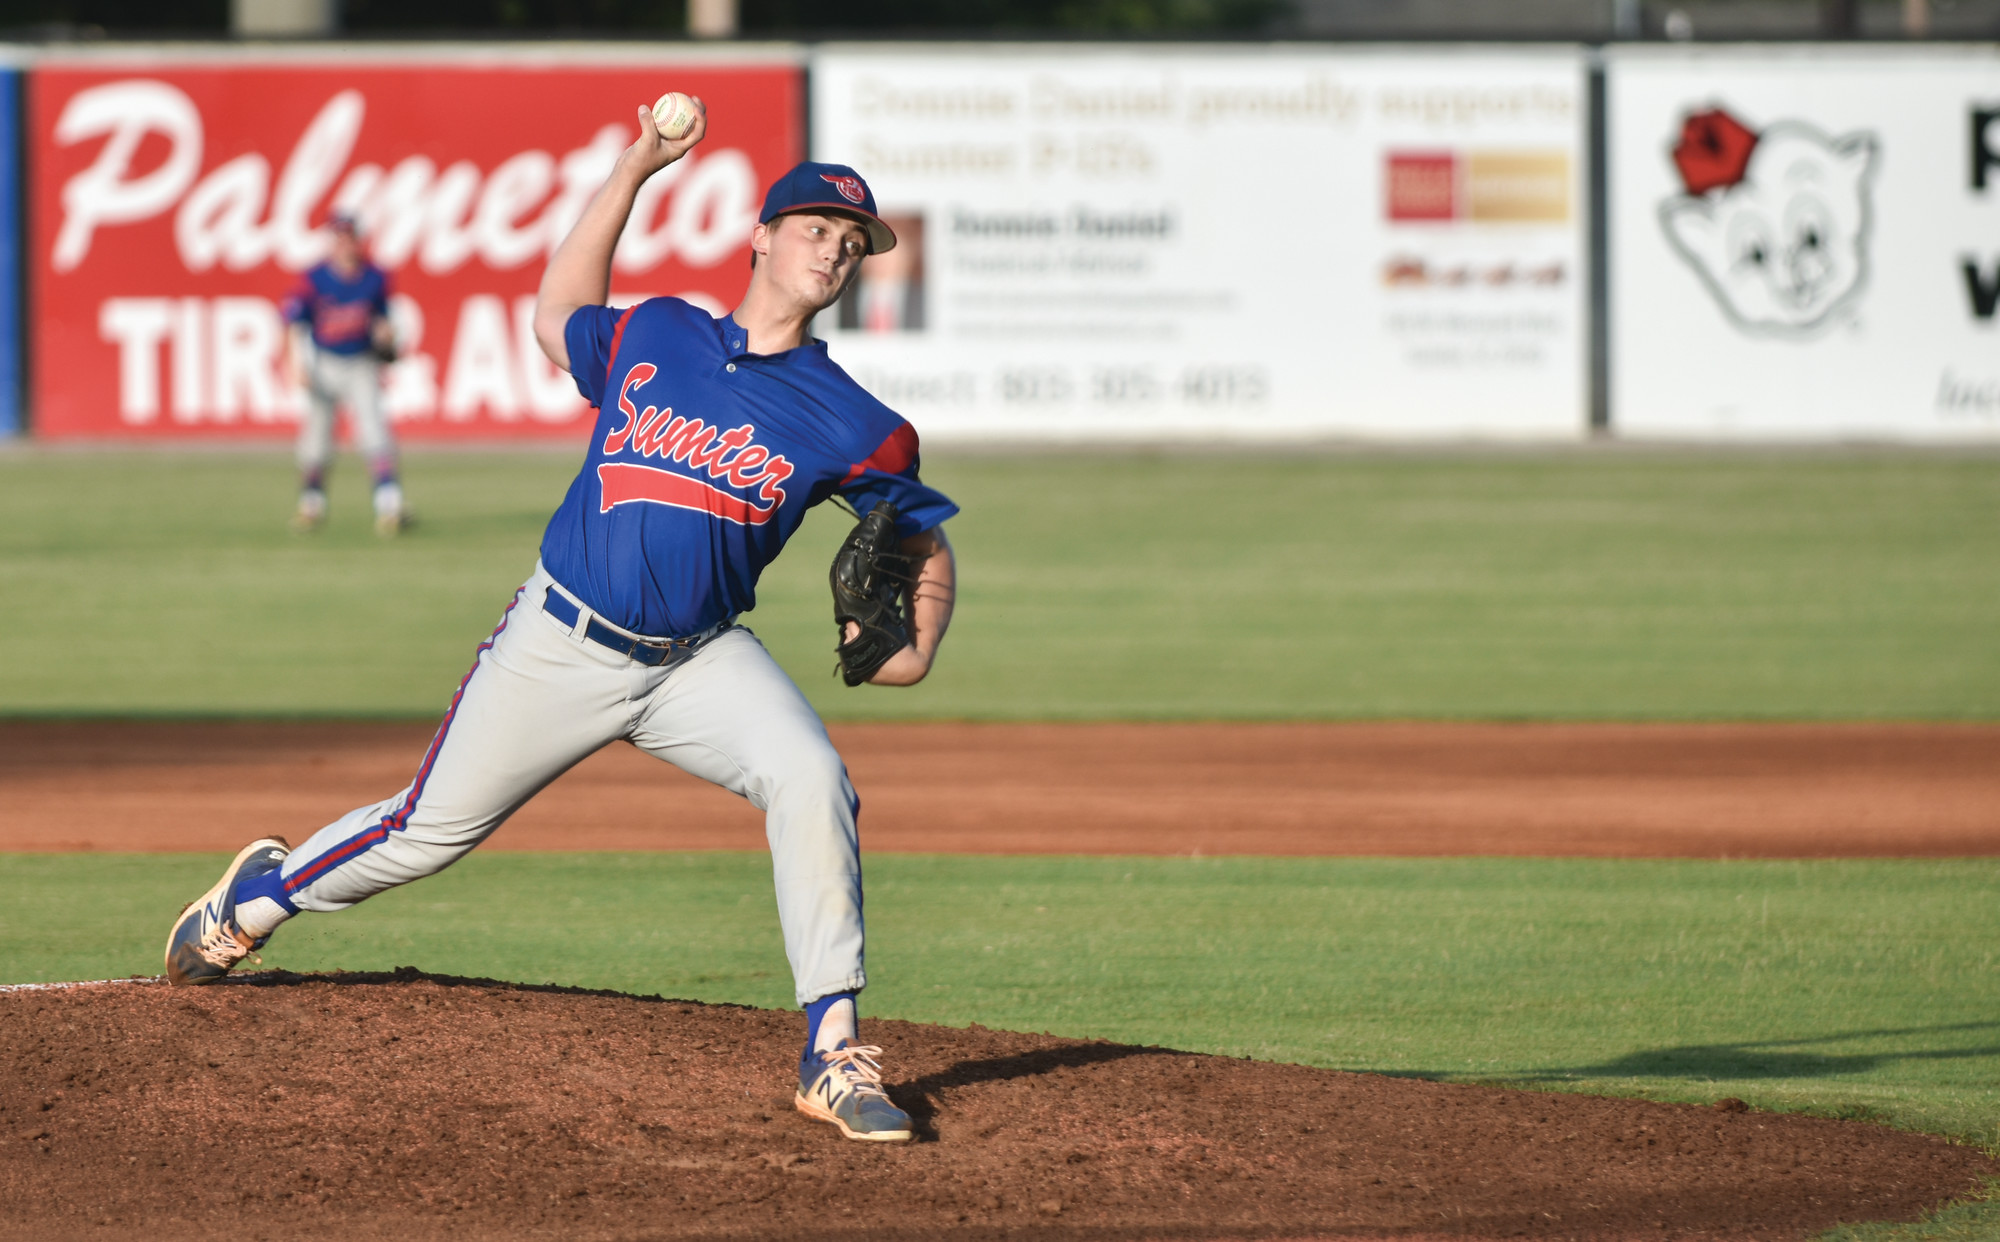 Sumter's Lathan Todd may get the call in the P-15's opening game in the American Legion Southeast Region Tournament against Alabama state champion Troy Post 70 today in Asheboro, North Carolina. The game is scheduled start around noon.